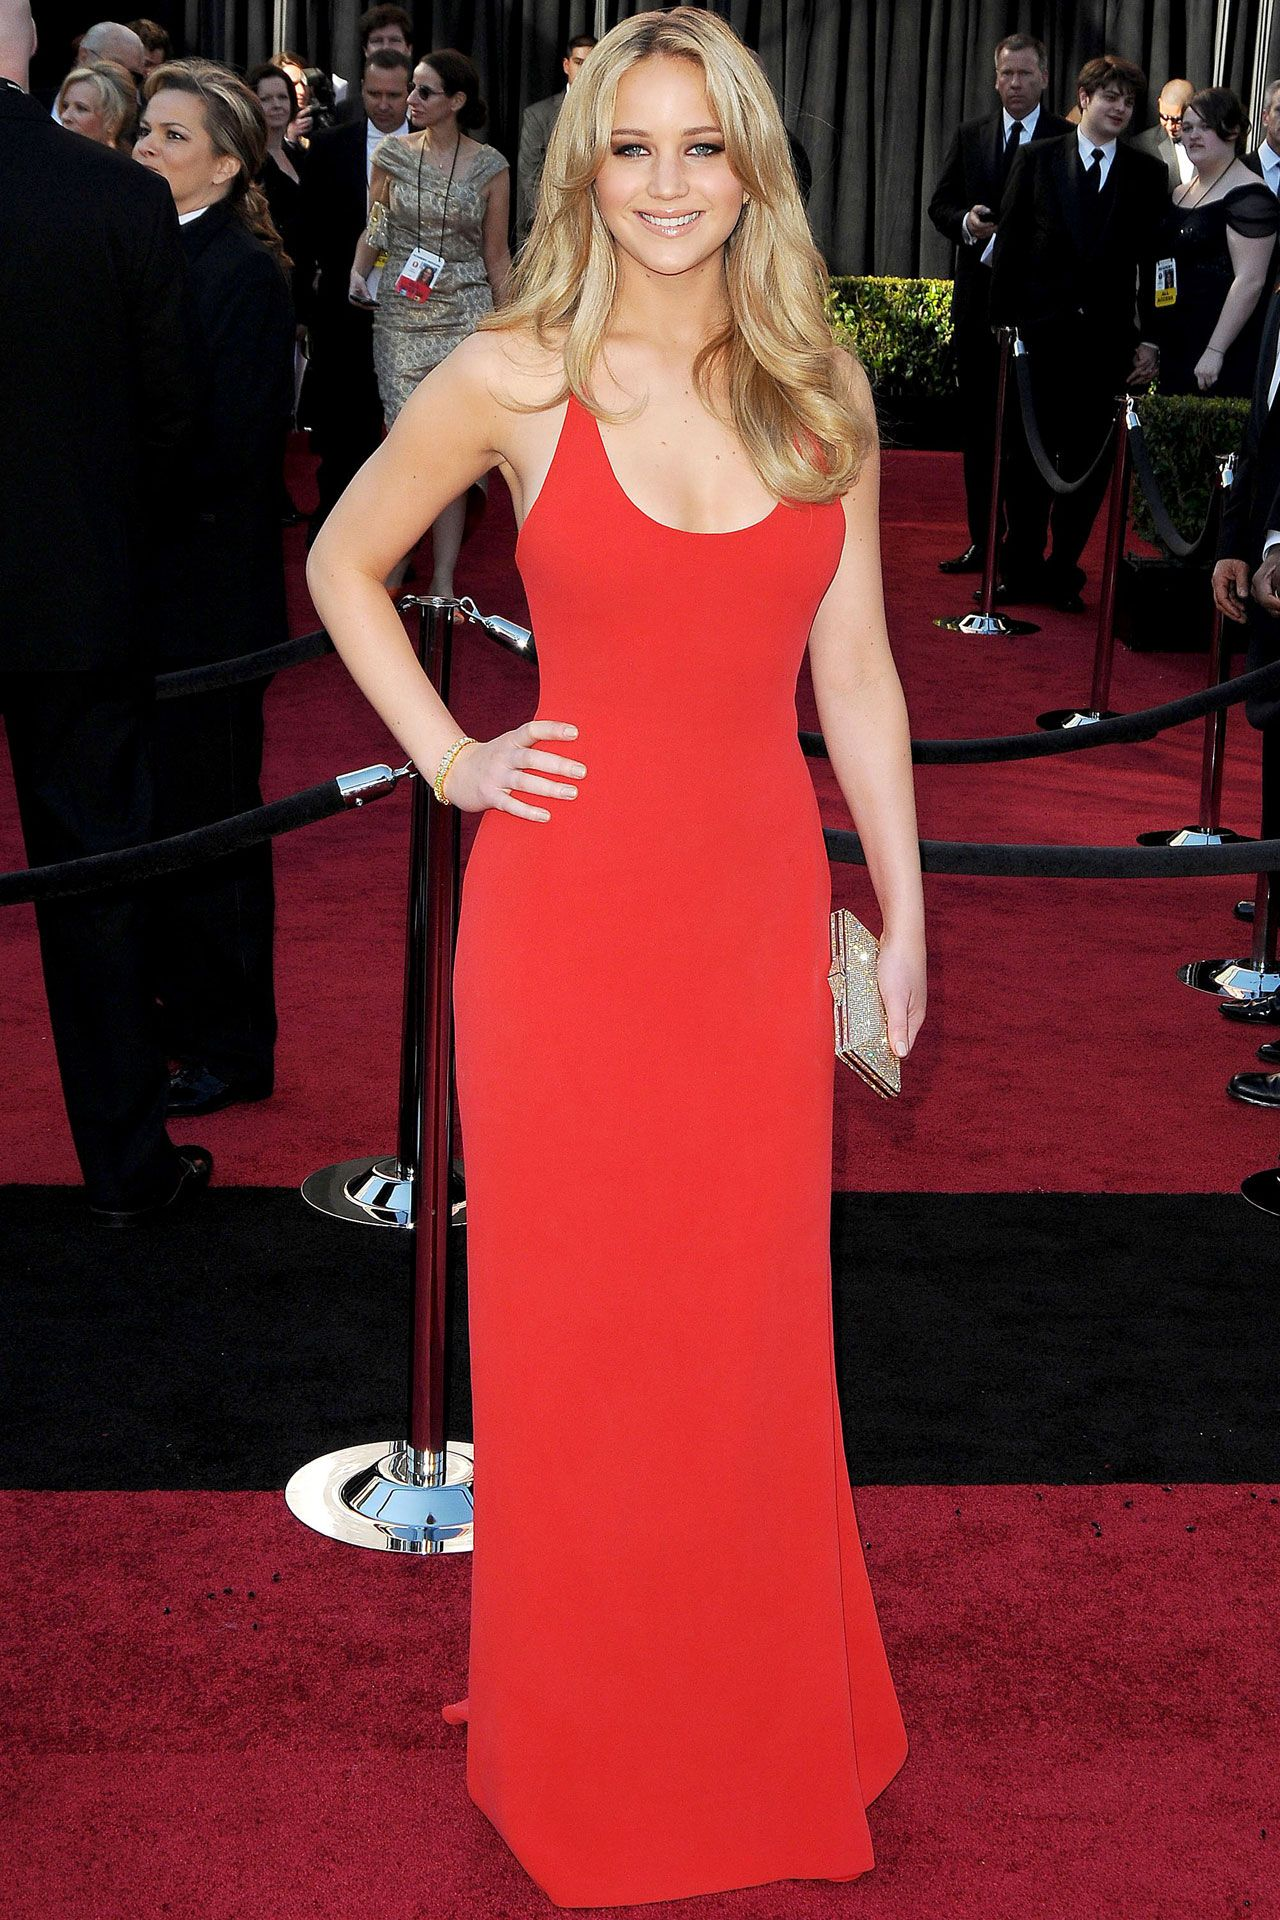 11db94f7418 Actress Jennifer Lawrence in a scarlet Calvin Klein Collection dress at the  83rd Annual Academy Awards in Los Angeles.